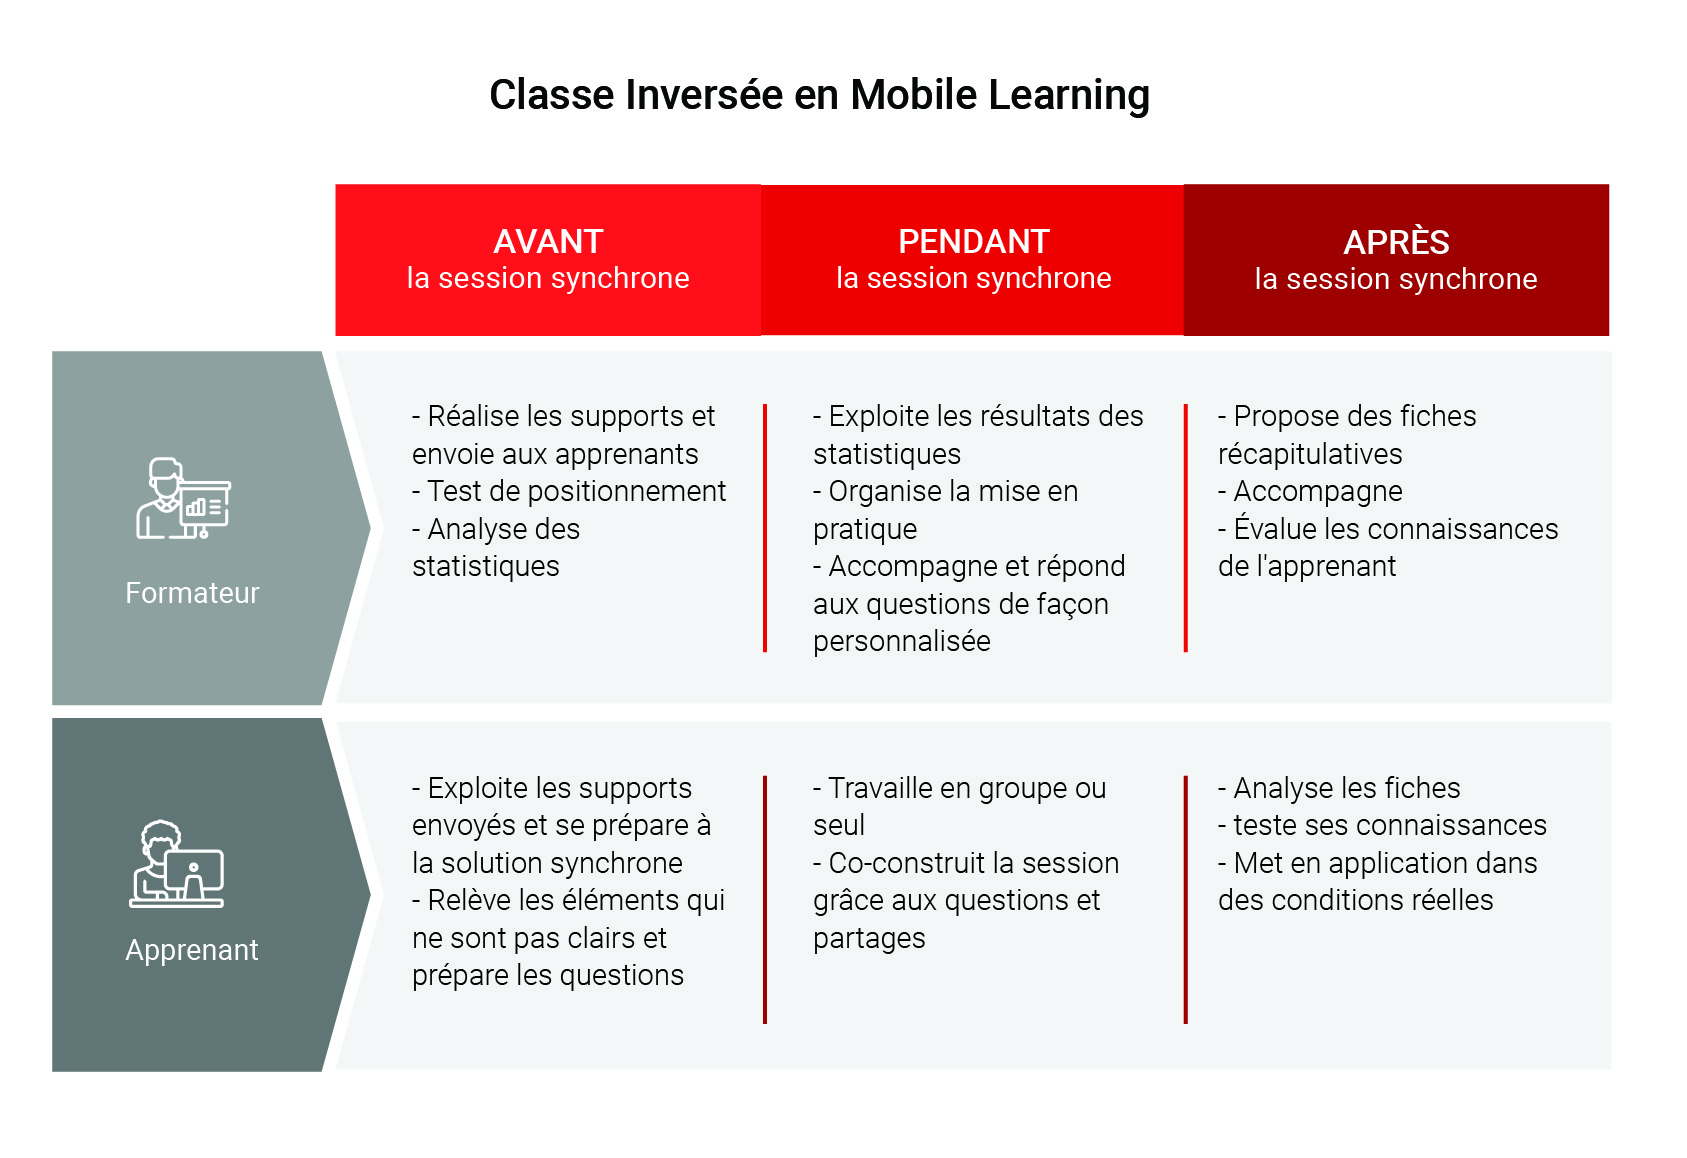 classe inversee en mobile learning